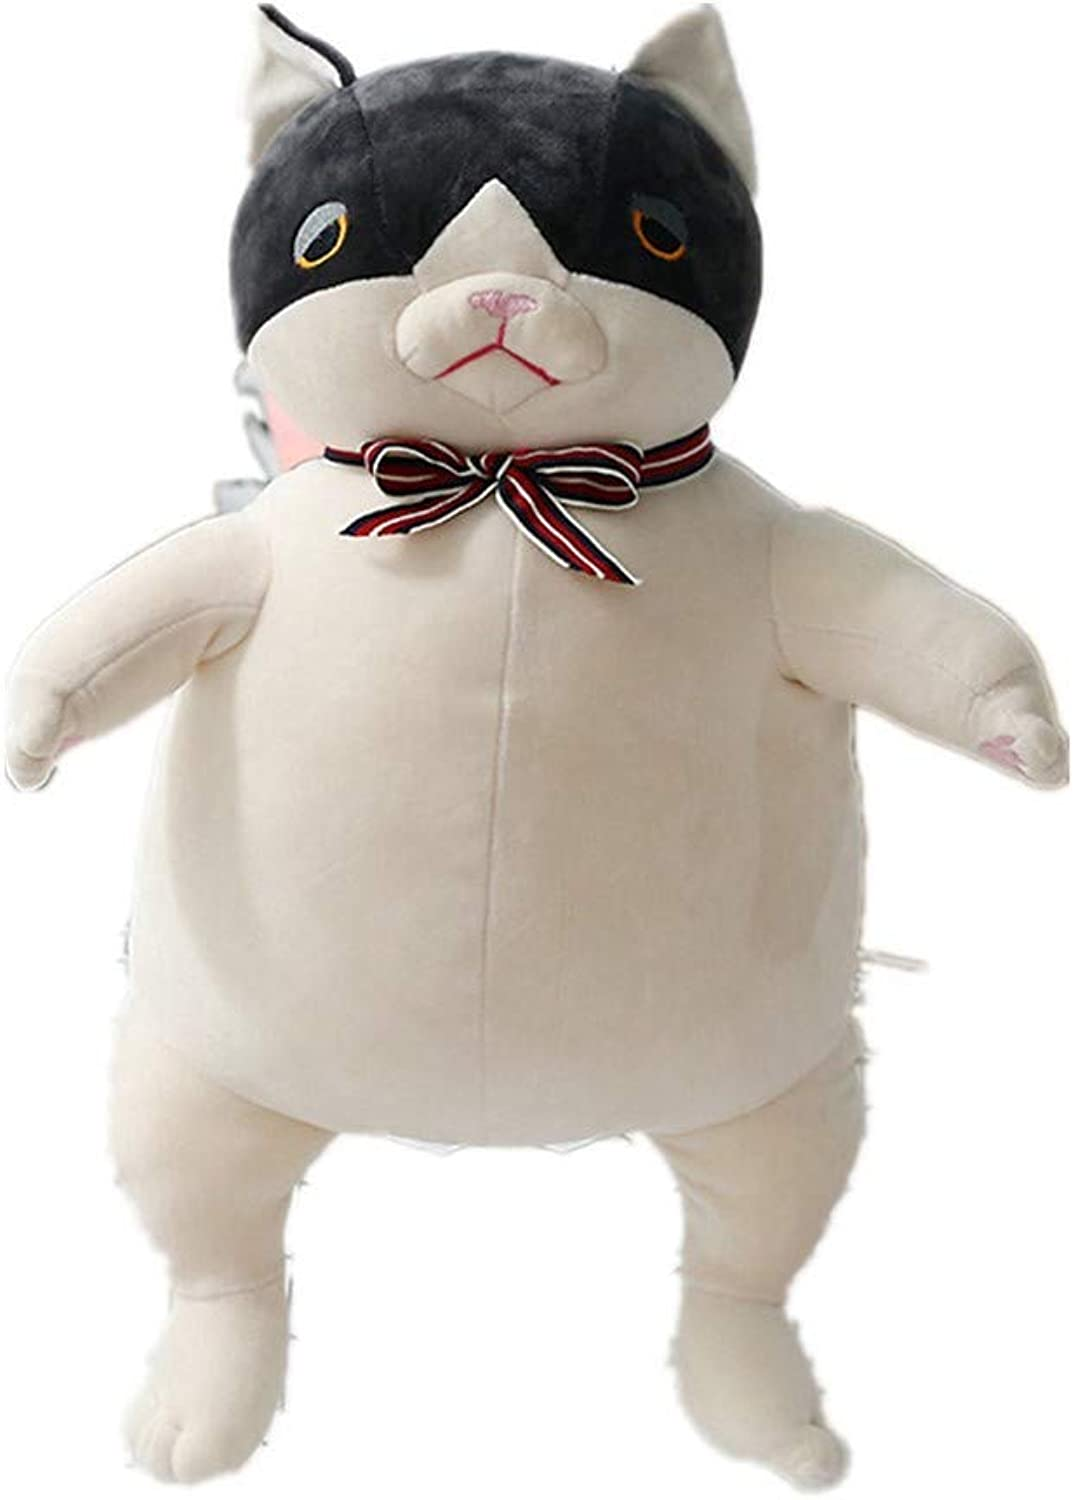 LAIBAERDAN Plush Toy Kung Fu Cat Plush Doll Super Funny Plush Doll Pillow Holiday Birthday Gift 55Cm, 55Cm